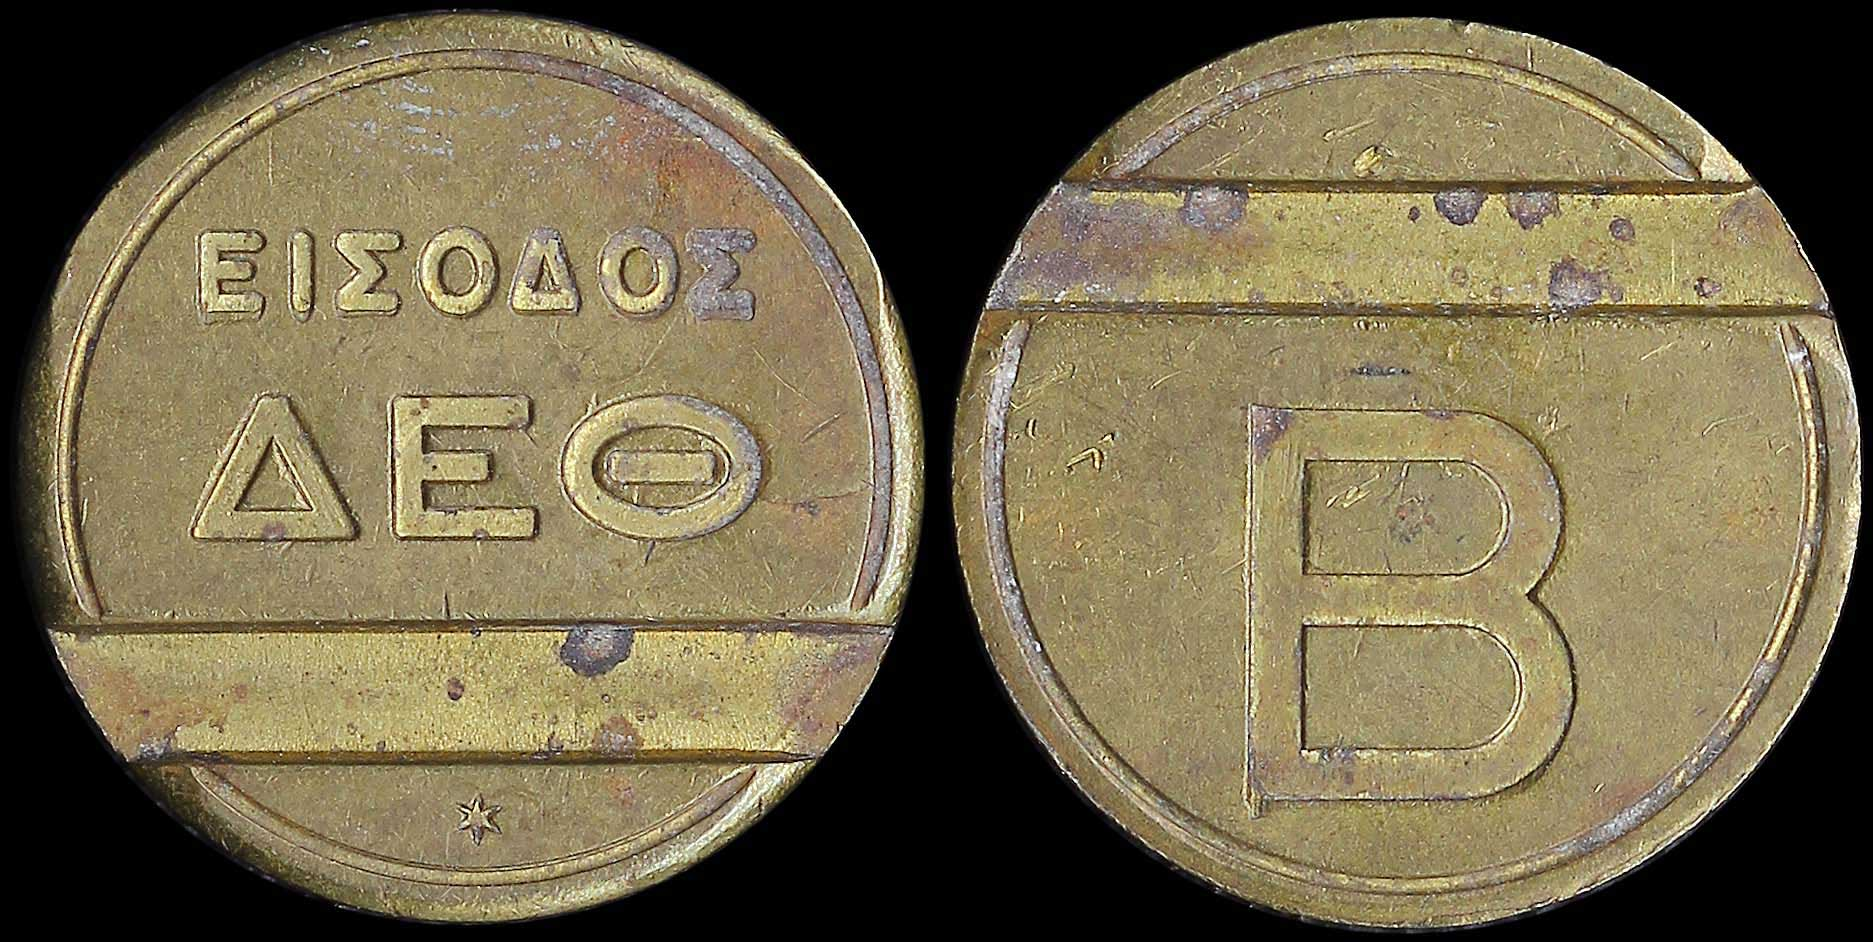 Lot 6326 - -  COINS & TOKENS greek private tokens -  A. Karamitsos Public & Live Internet Auction 682 (Part A) Coins, Medals & Banknotes